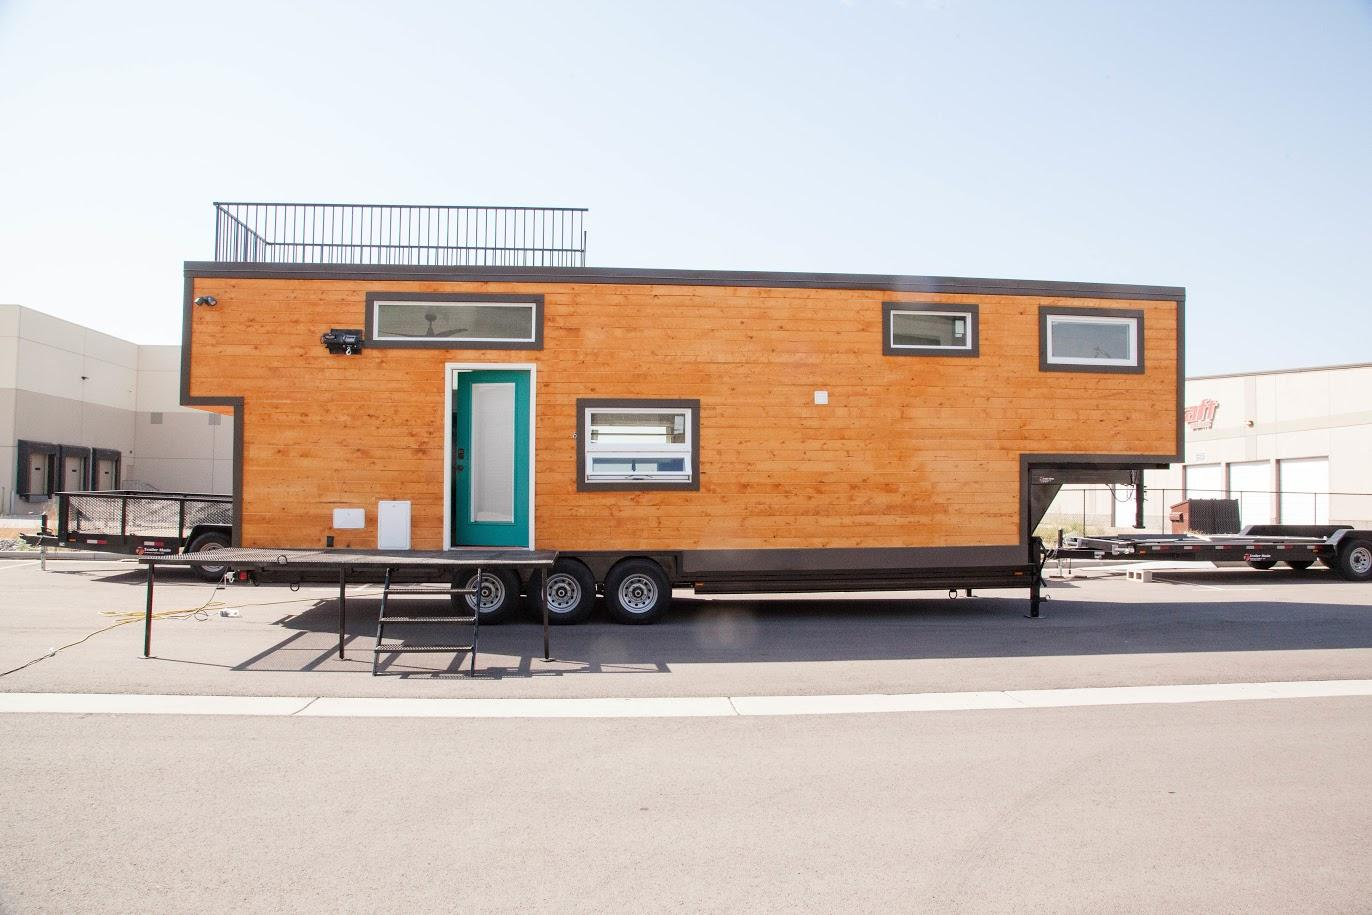 El Gato is the purr-fect tiny house for cat-lovers